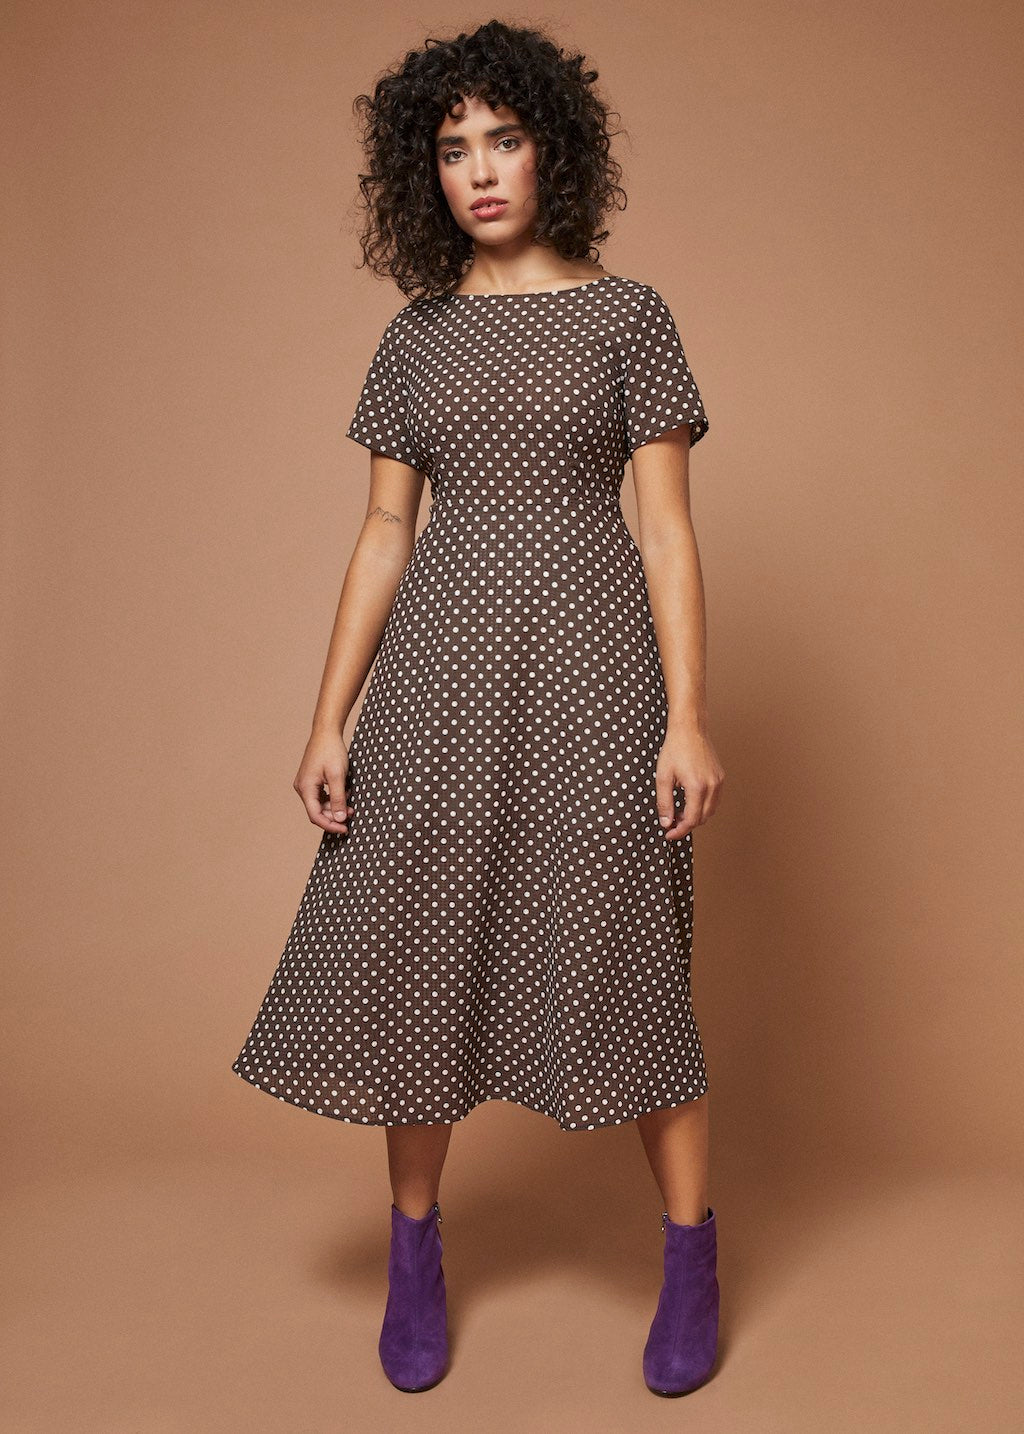 Django Jane | Midi Dress | Polka Dot